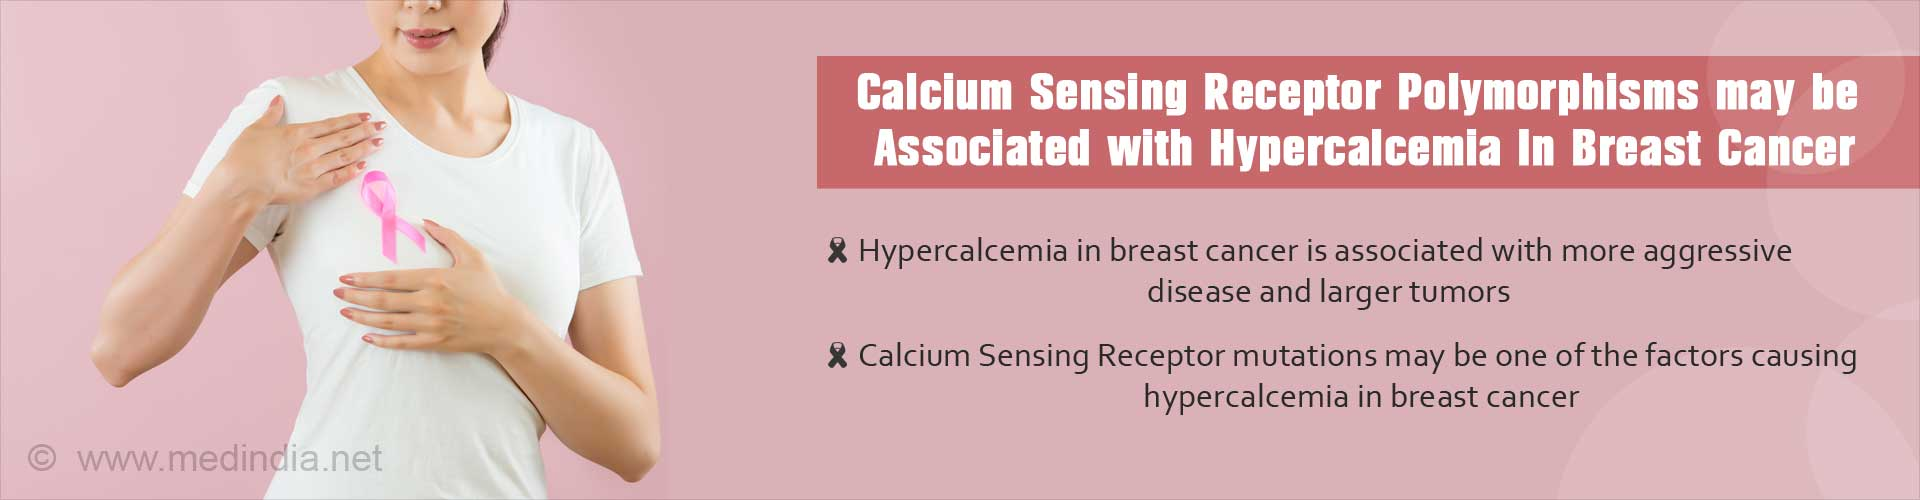 Hypercalcemia in Breast Cancer - Inactivating Polymorphisms of Calcium Sensing Receptor May Be Responsible